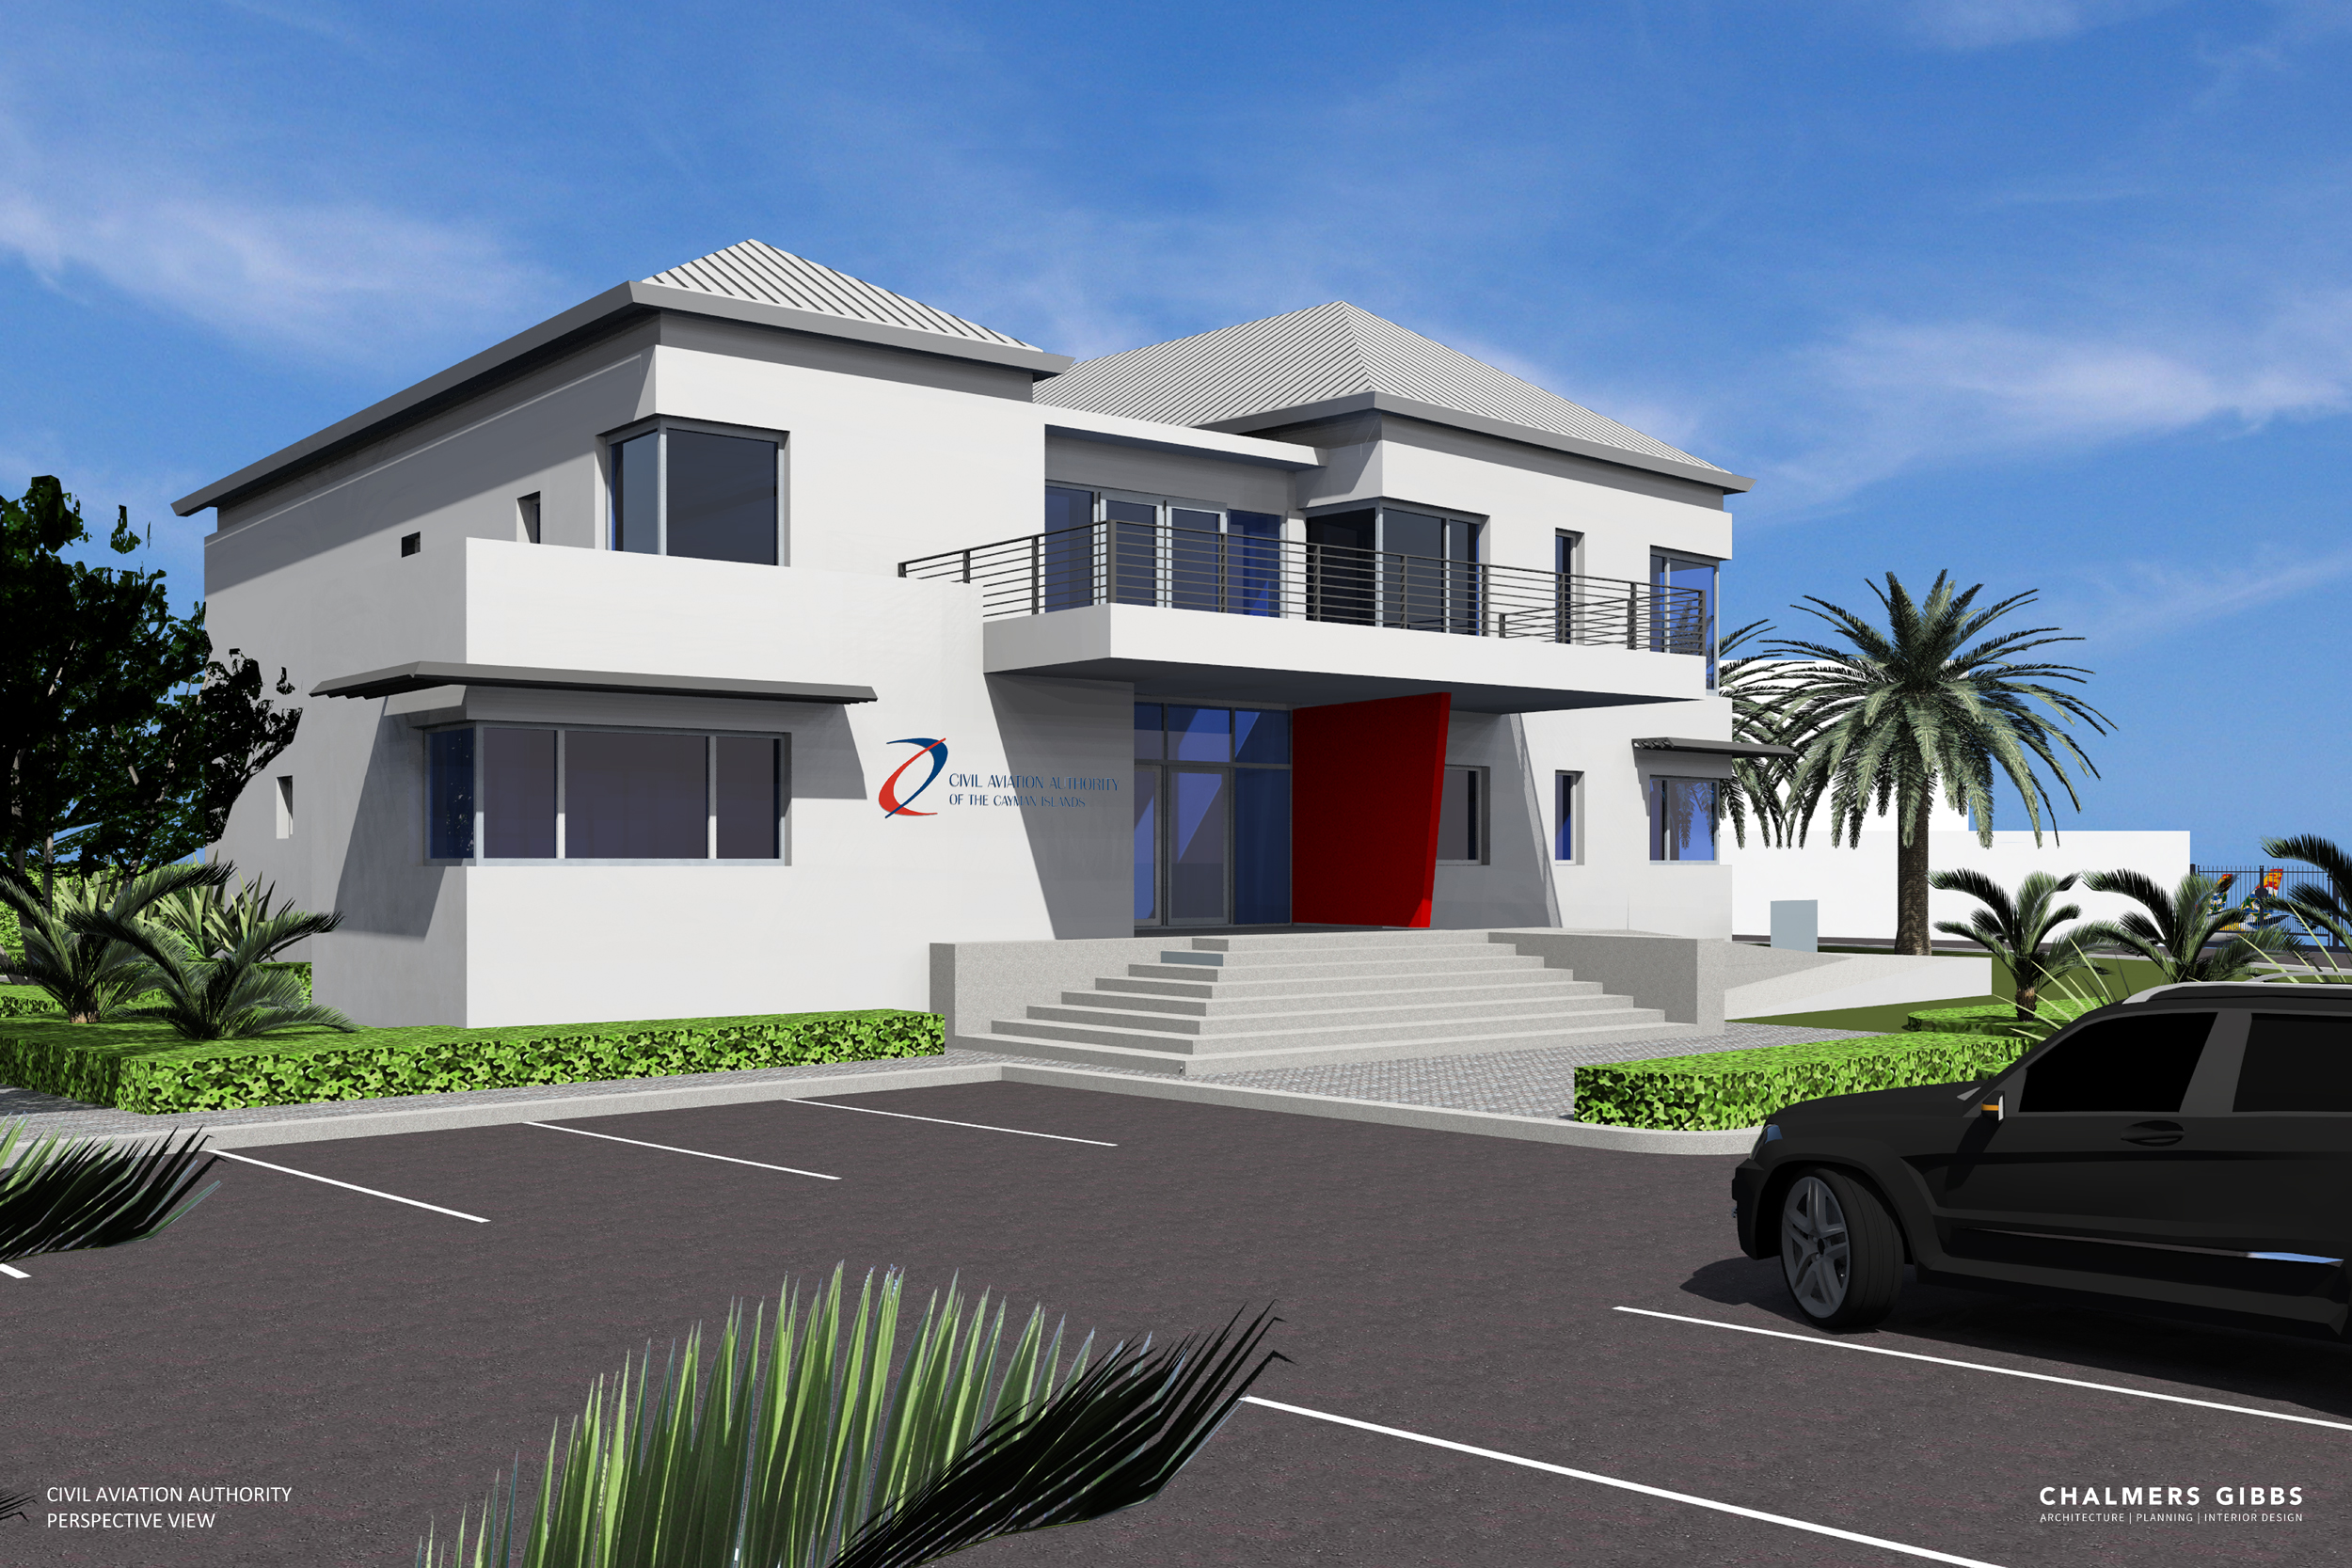 architectural rendering CAACI